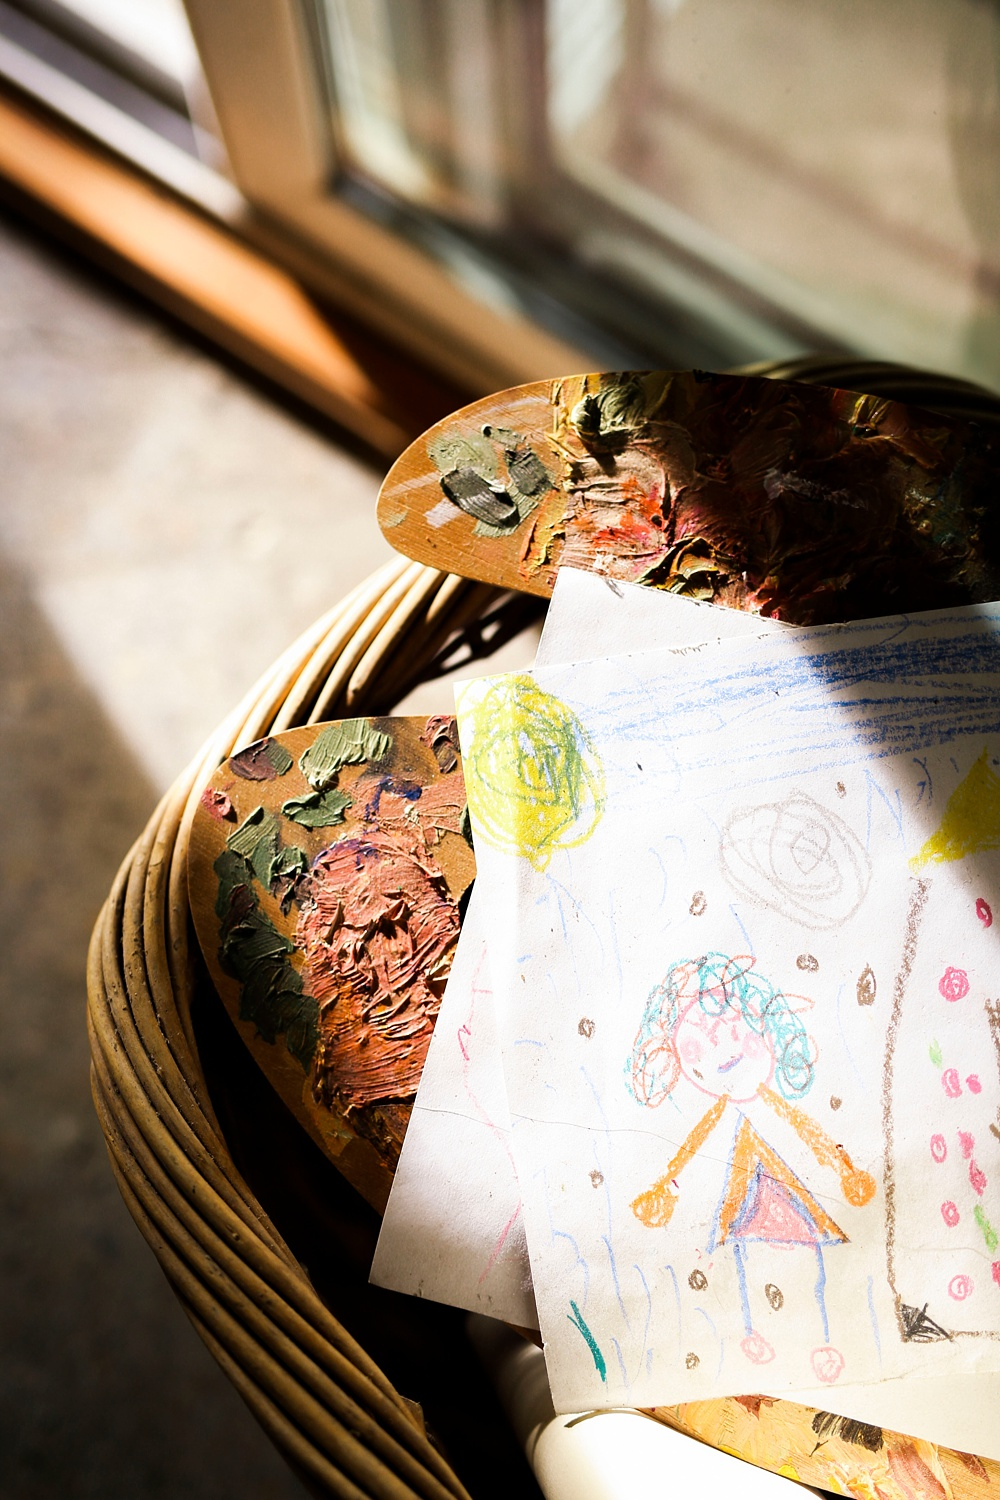 paint palette rests in a wicker basket with a child's drawings